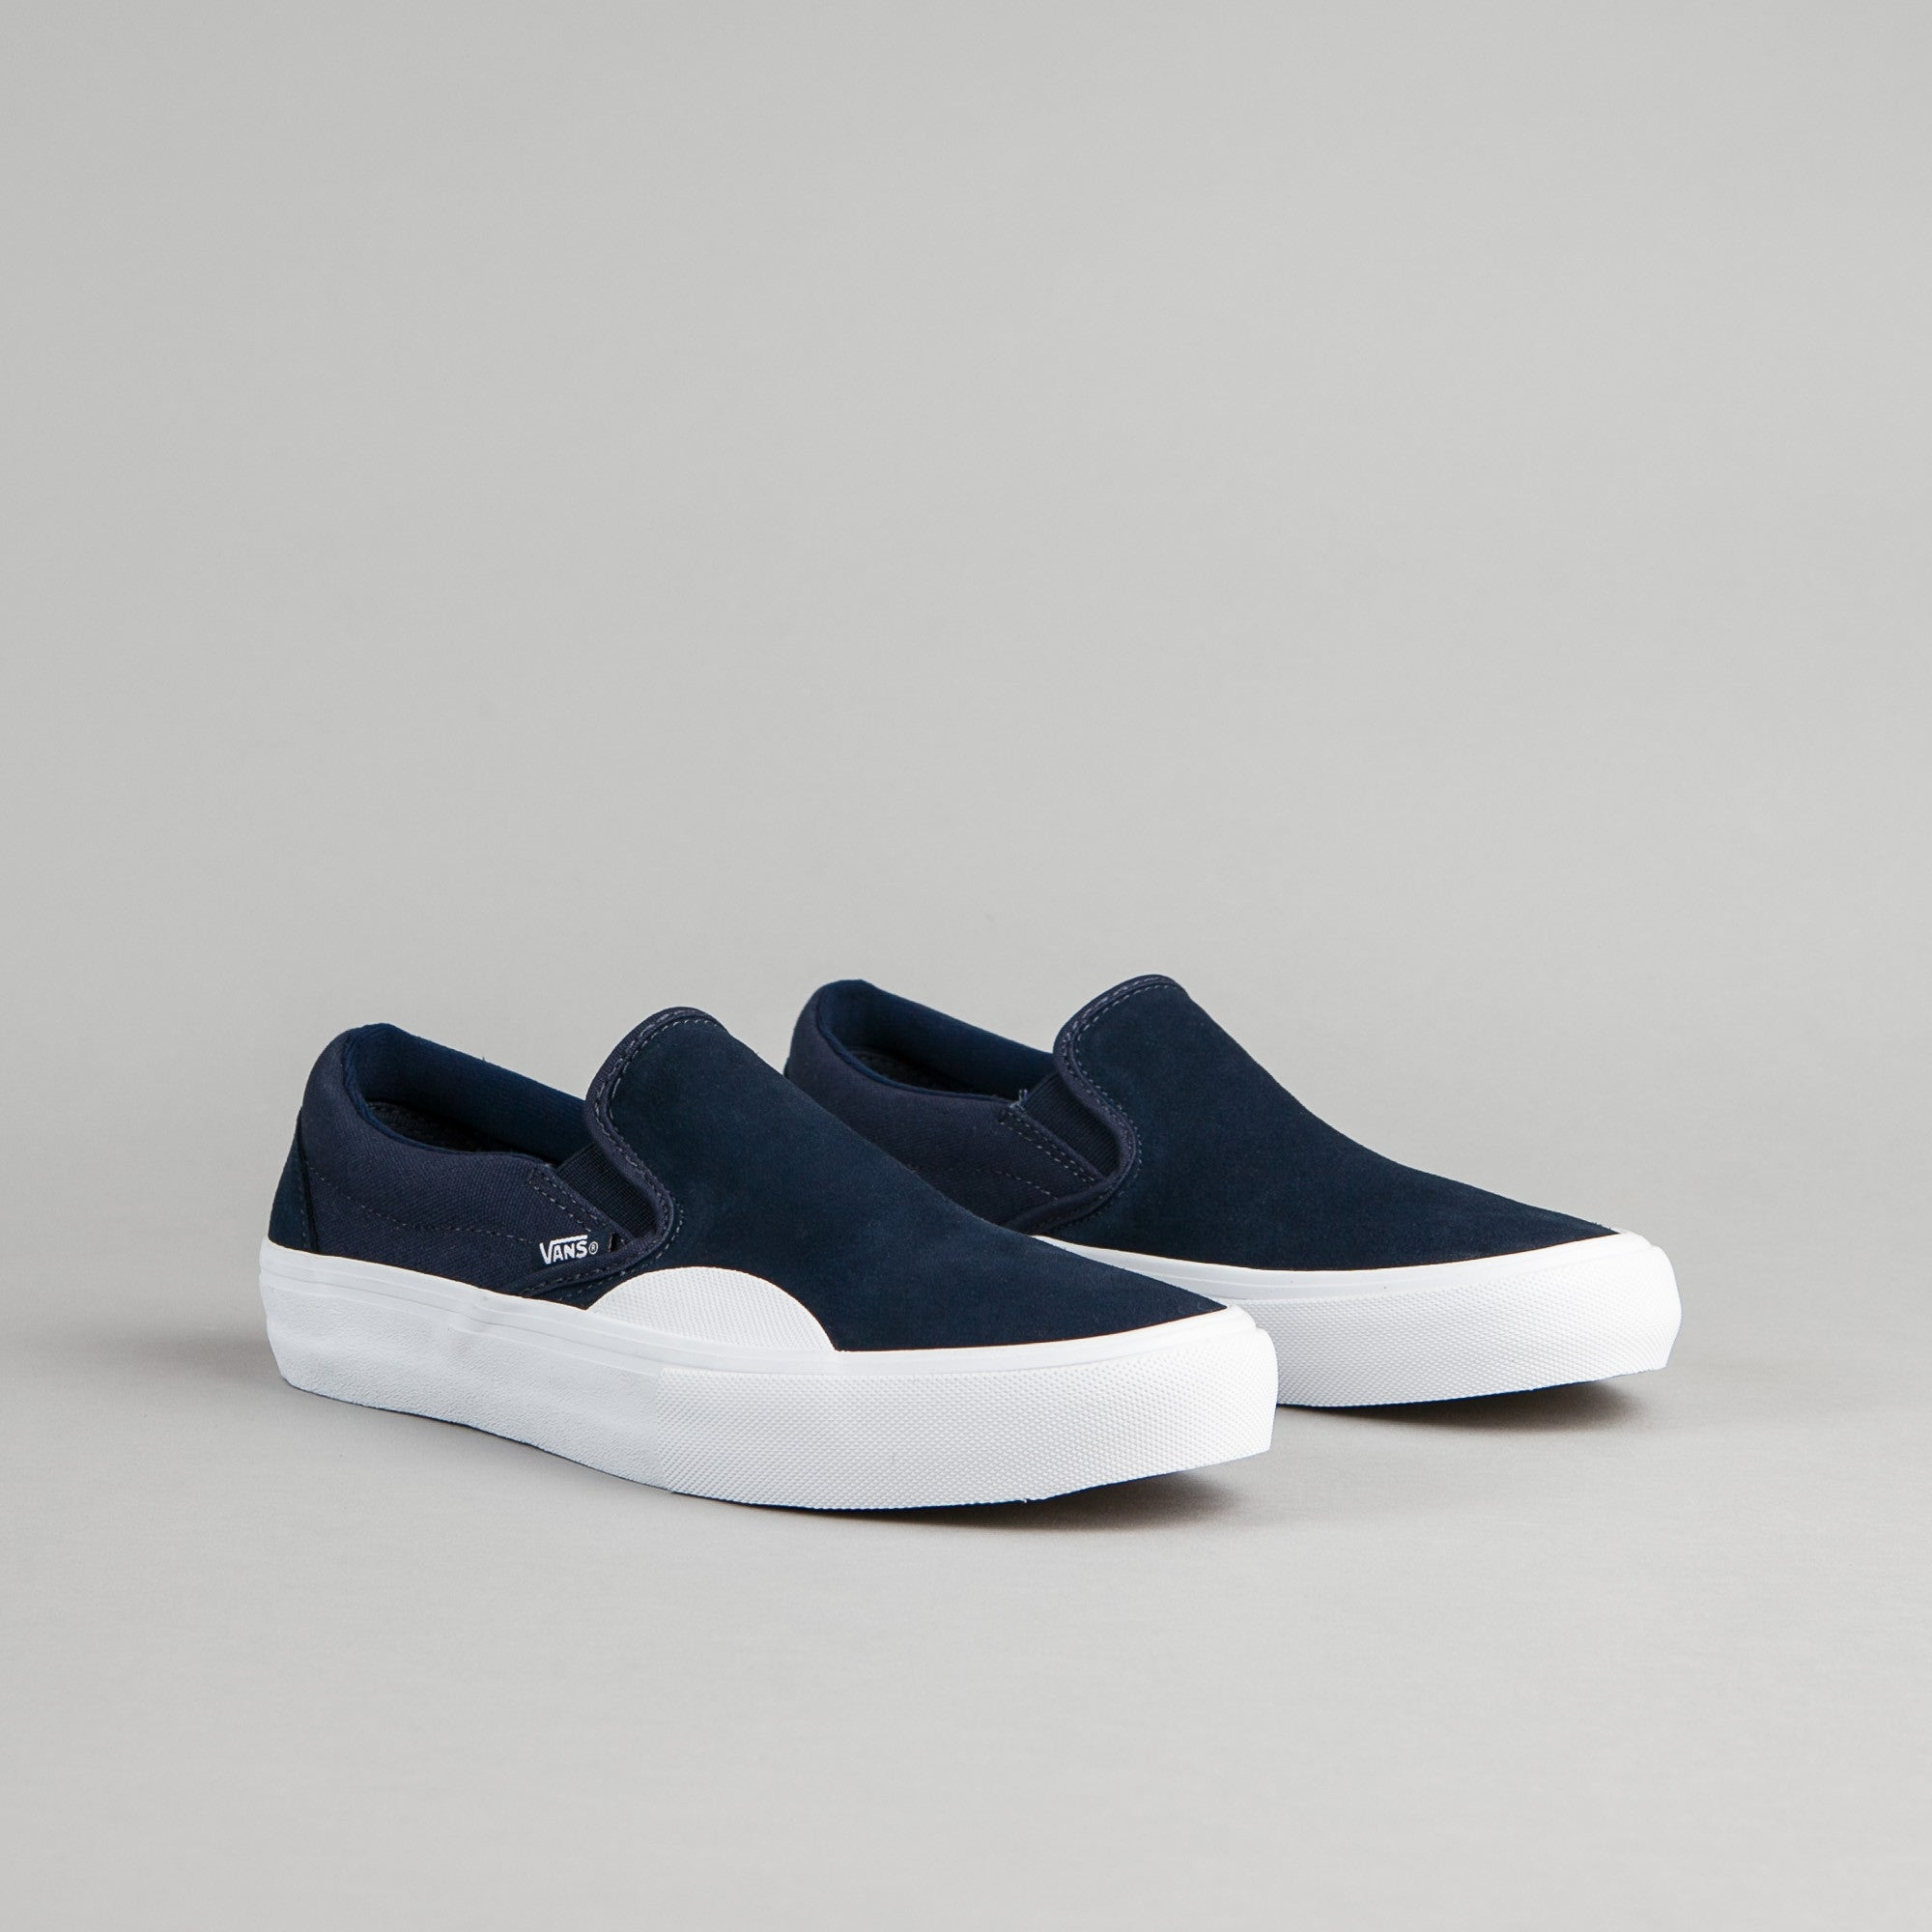 89a710d778eff6 ... Vans Slip On Pro Shoes - (Rubber) Dress Blues   White ...